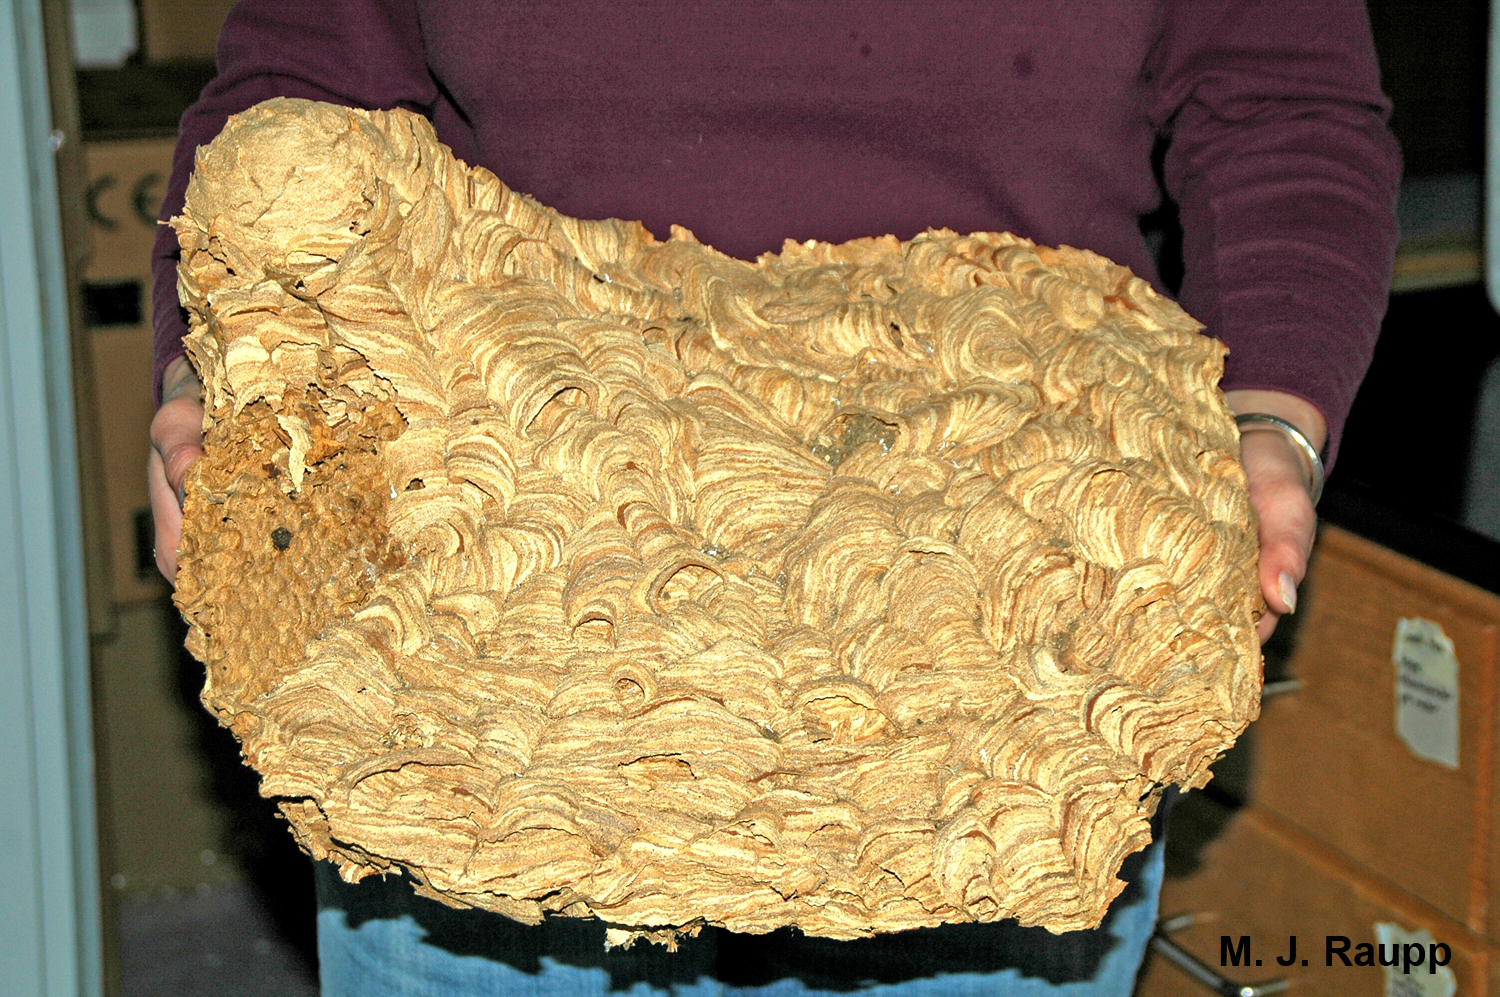 This large nest came from a wall void in my neighbor's home.